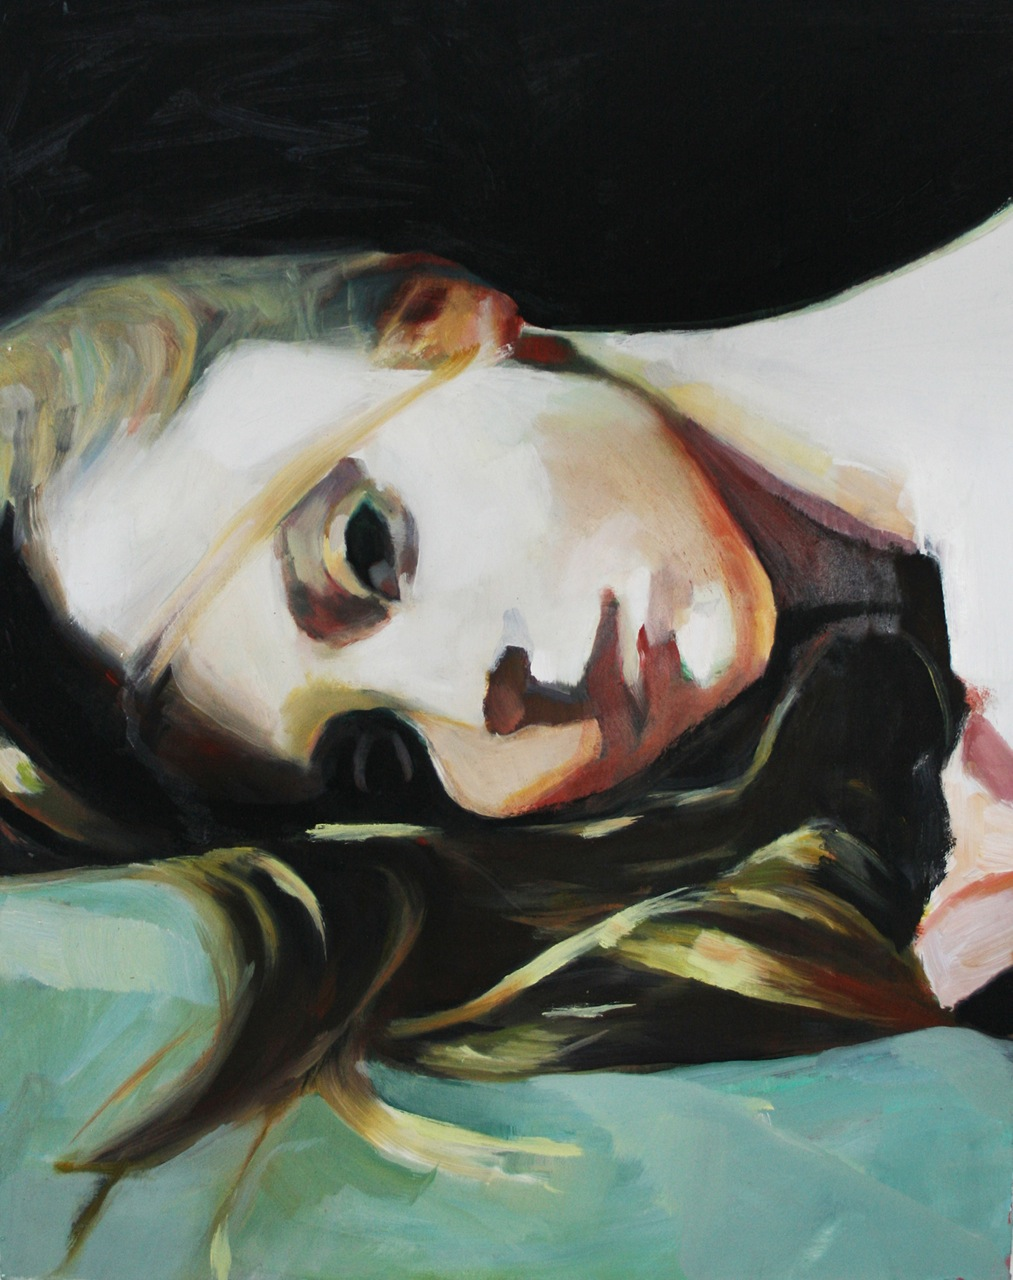 Juliana Romano - Girl lying on her back and turning her head - 2011 - courtesy l'artista & Brand New Gallery, Milano